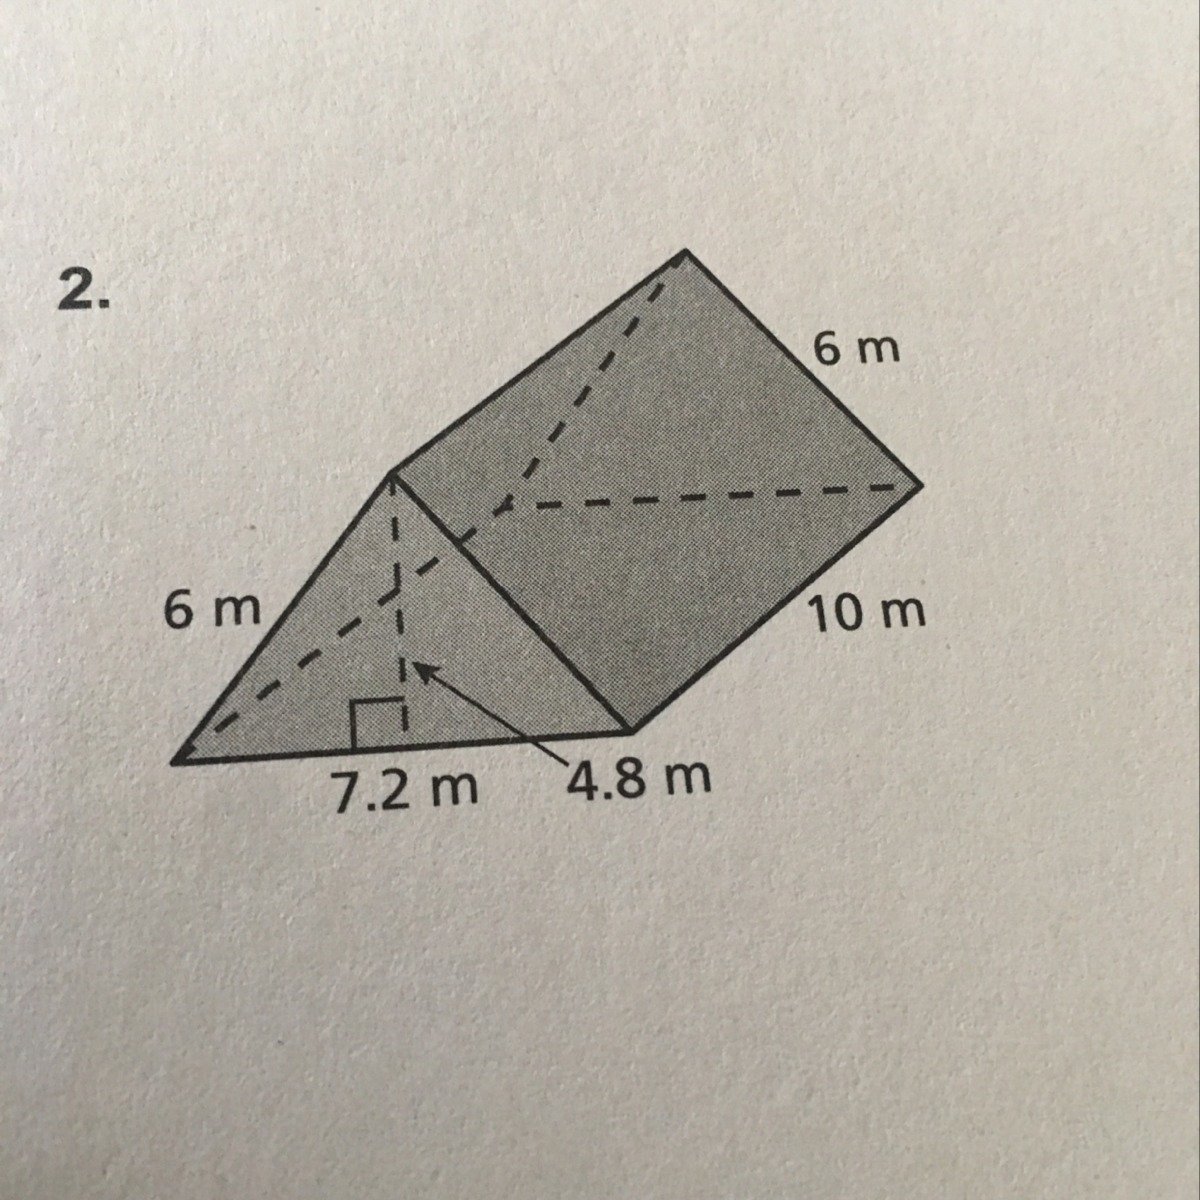 What Is The Surface Area For This Triangular Prism